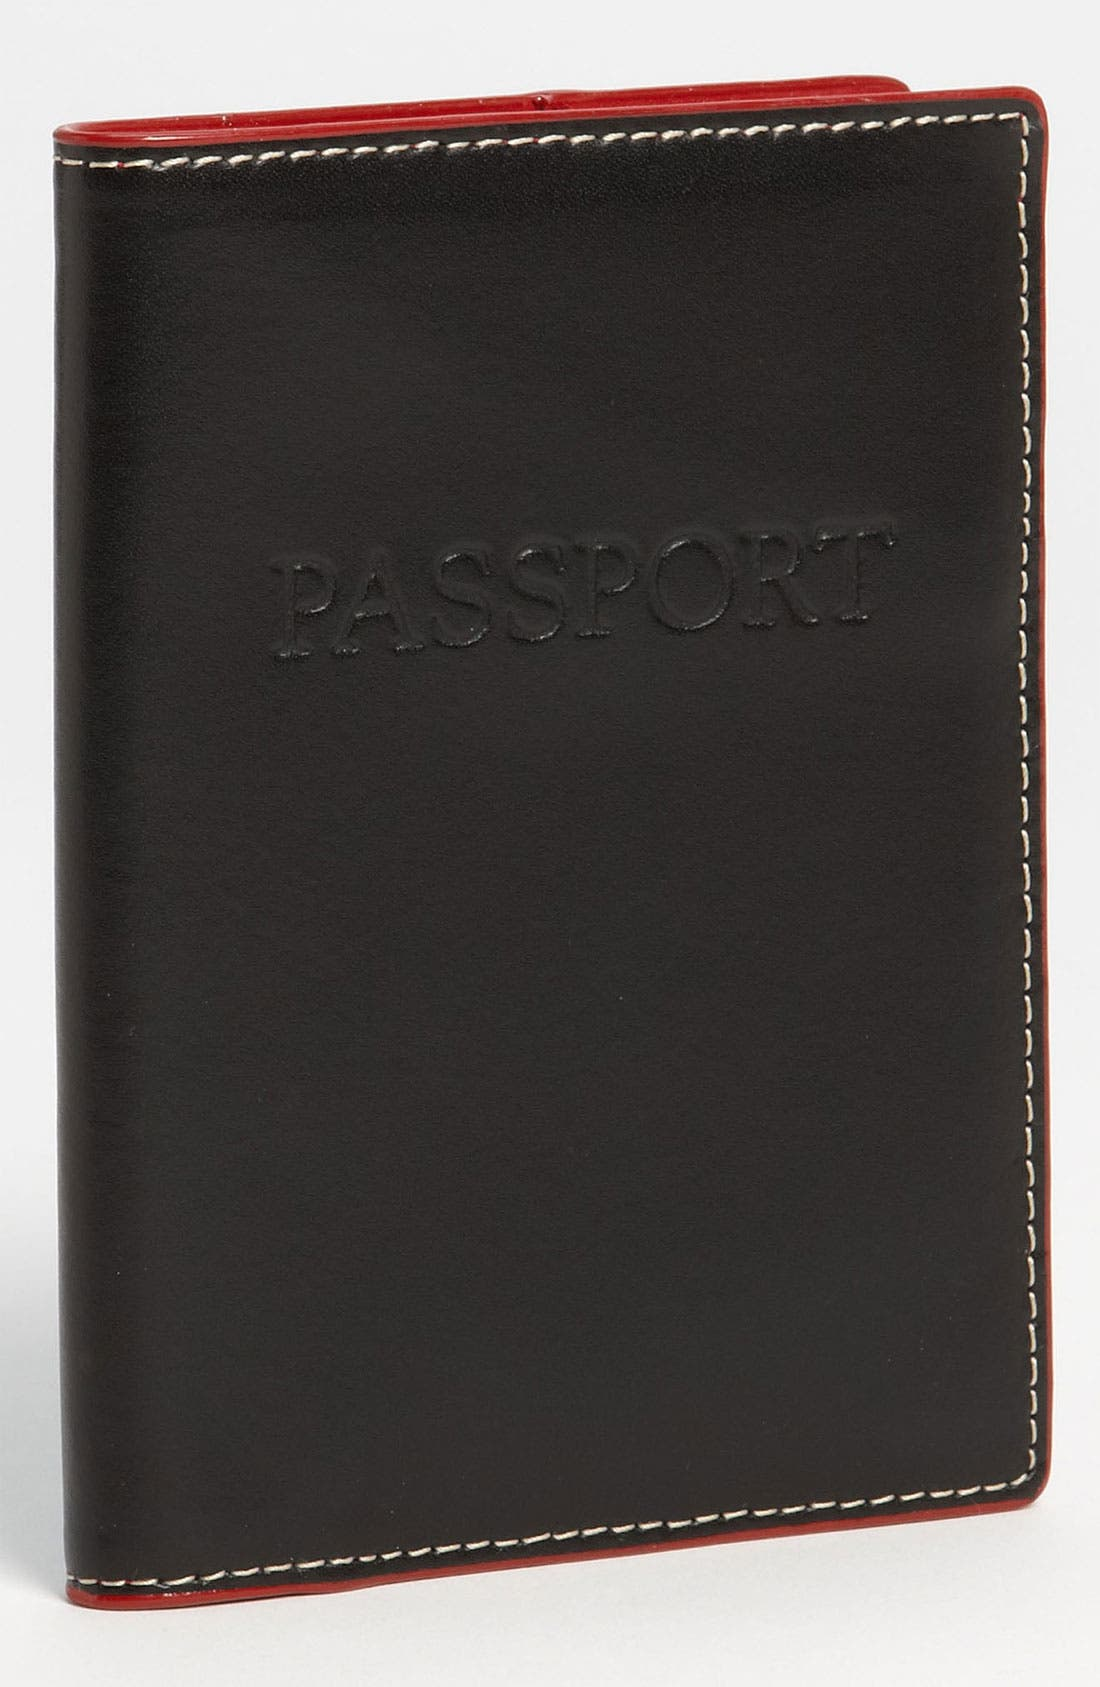 Alternate Image 1 Selected - Lodis 'Audrey' Passport Case